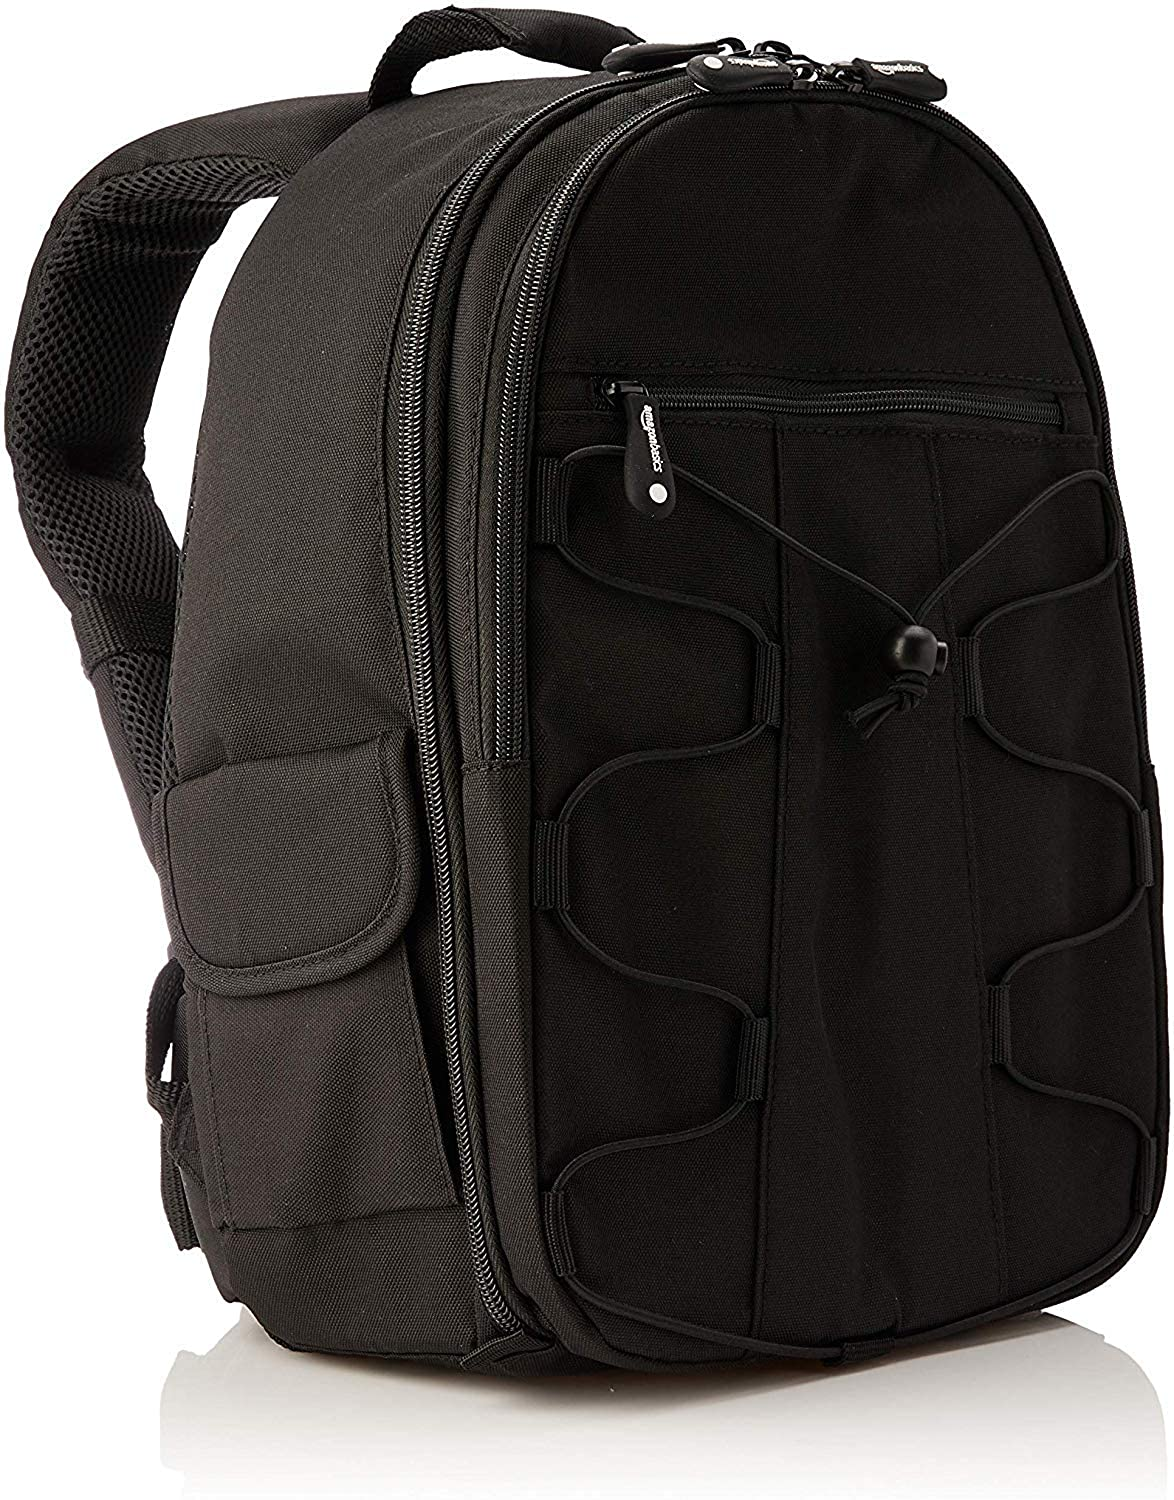 DSLR Cameras and Accessories Backpack